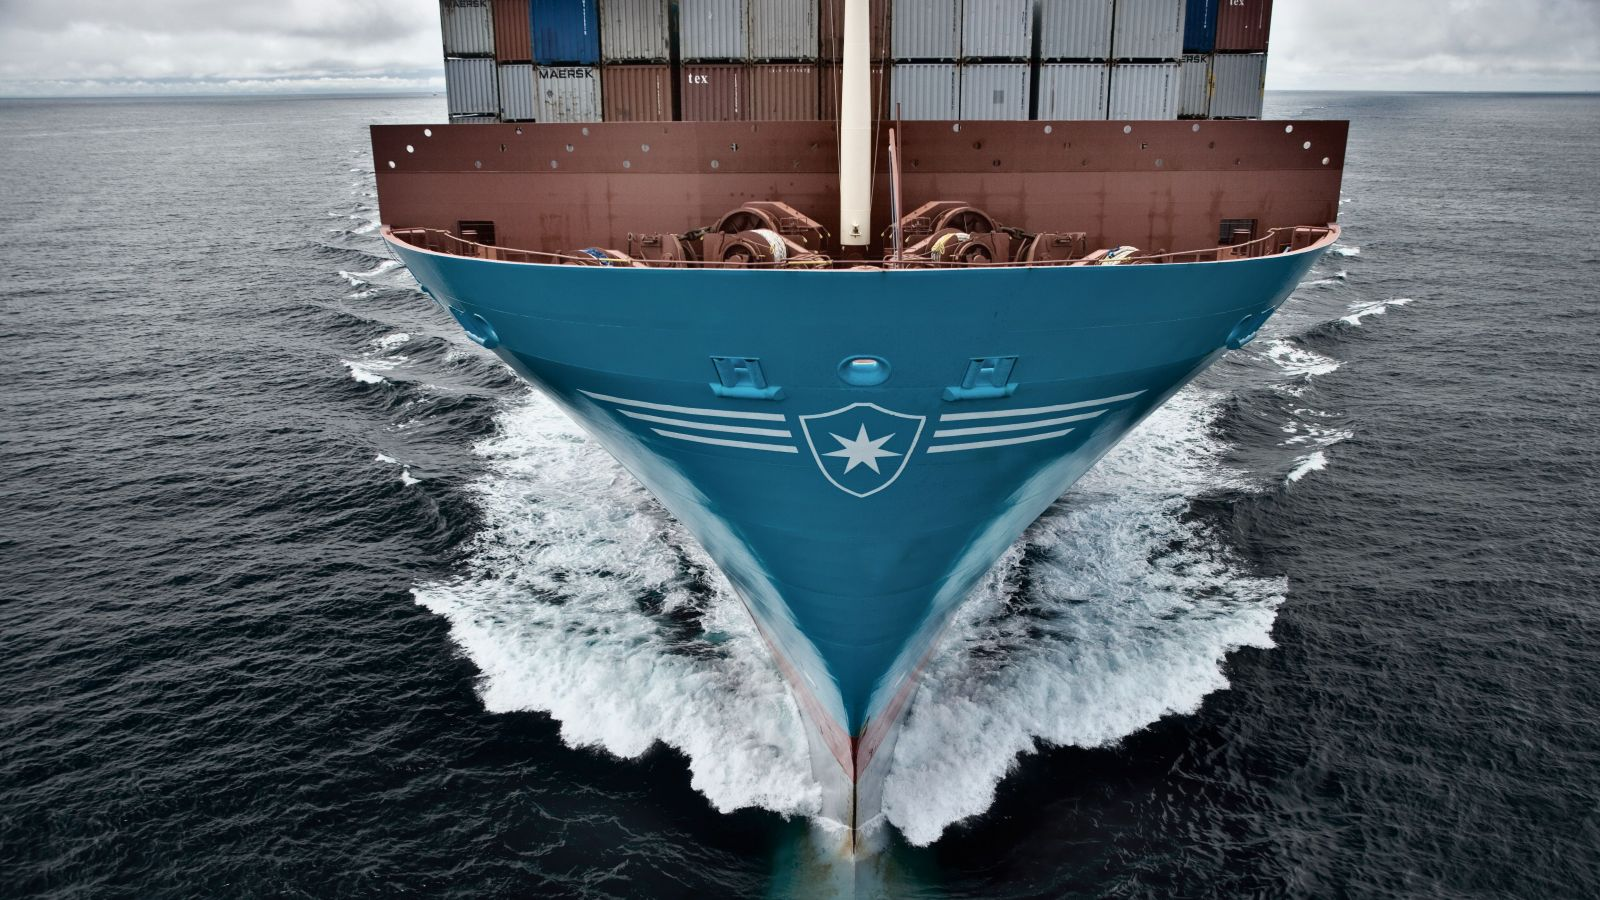 Big, Bigger, Biggest, Maersk